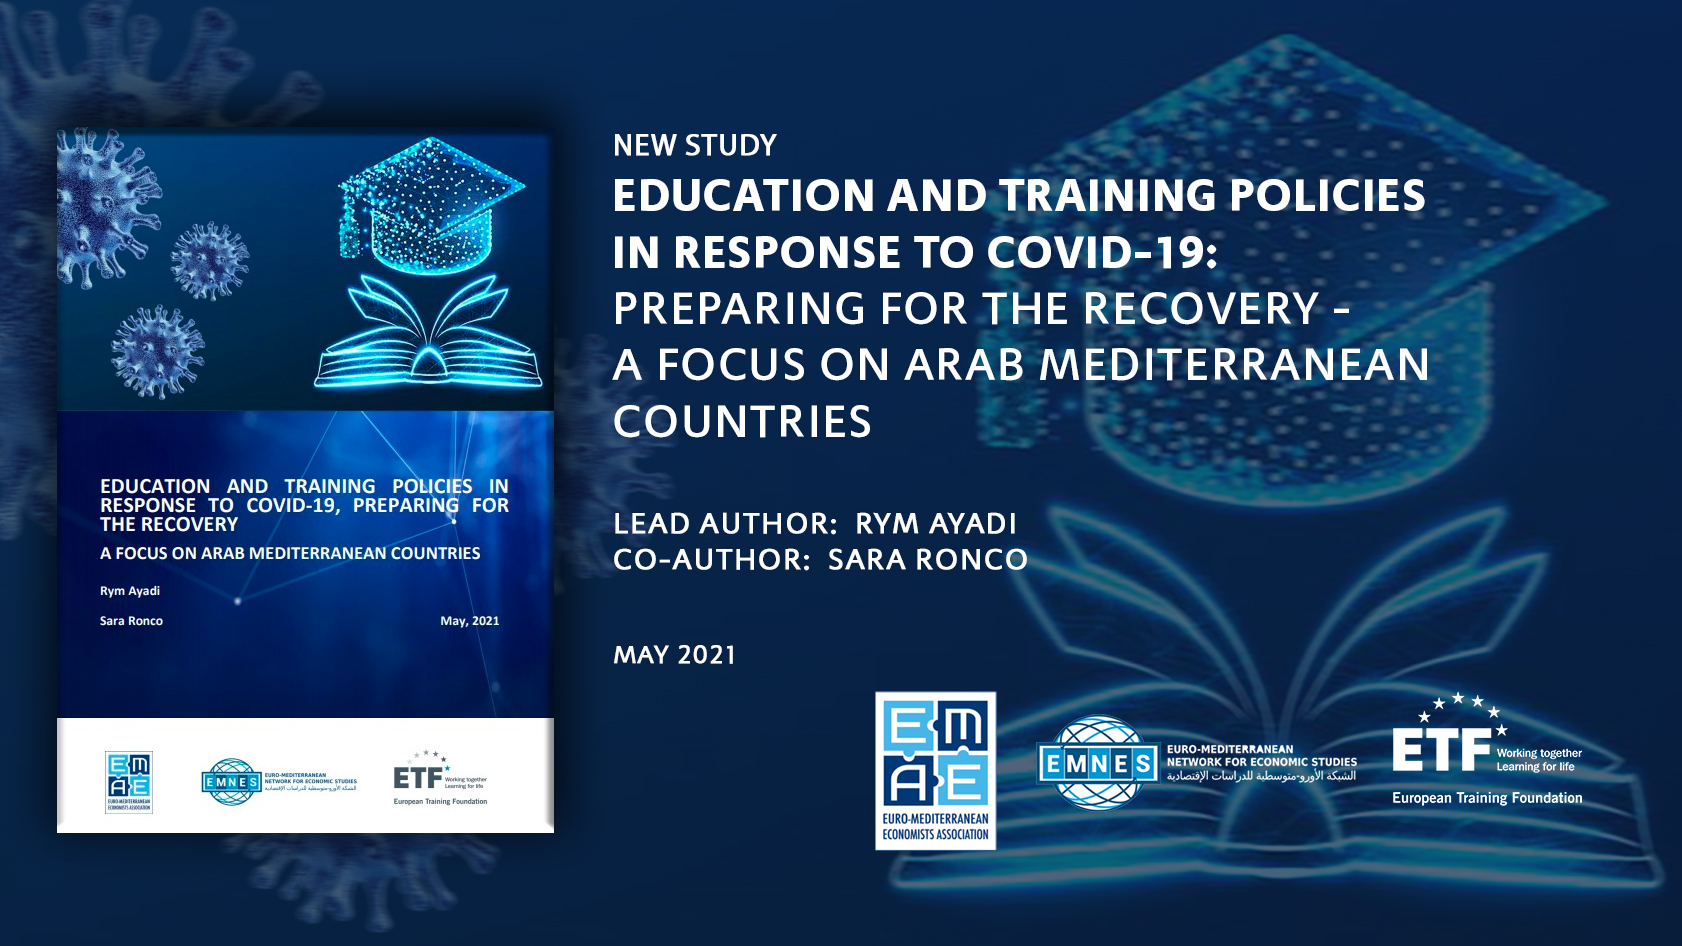 Education and Training Policies in Response to COVID-19: Preparing for the Recovery – A Focus on Arab Mediterranean Countries